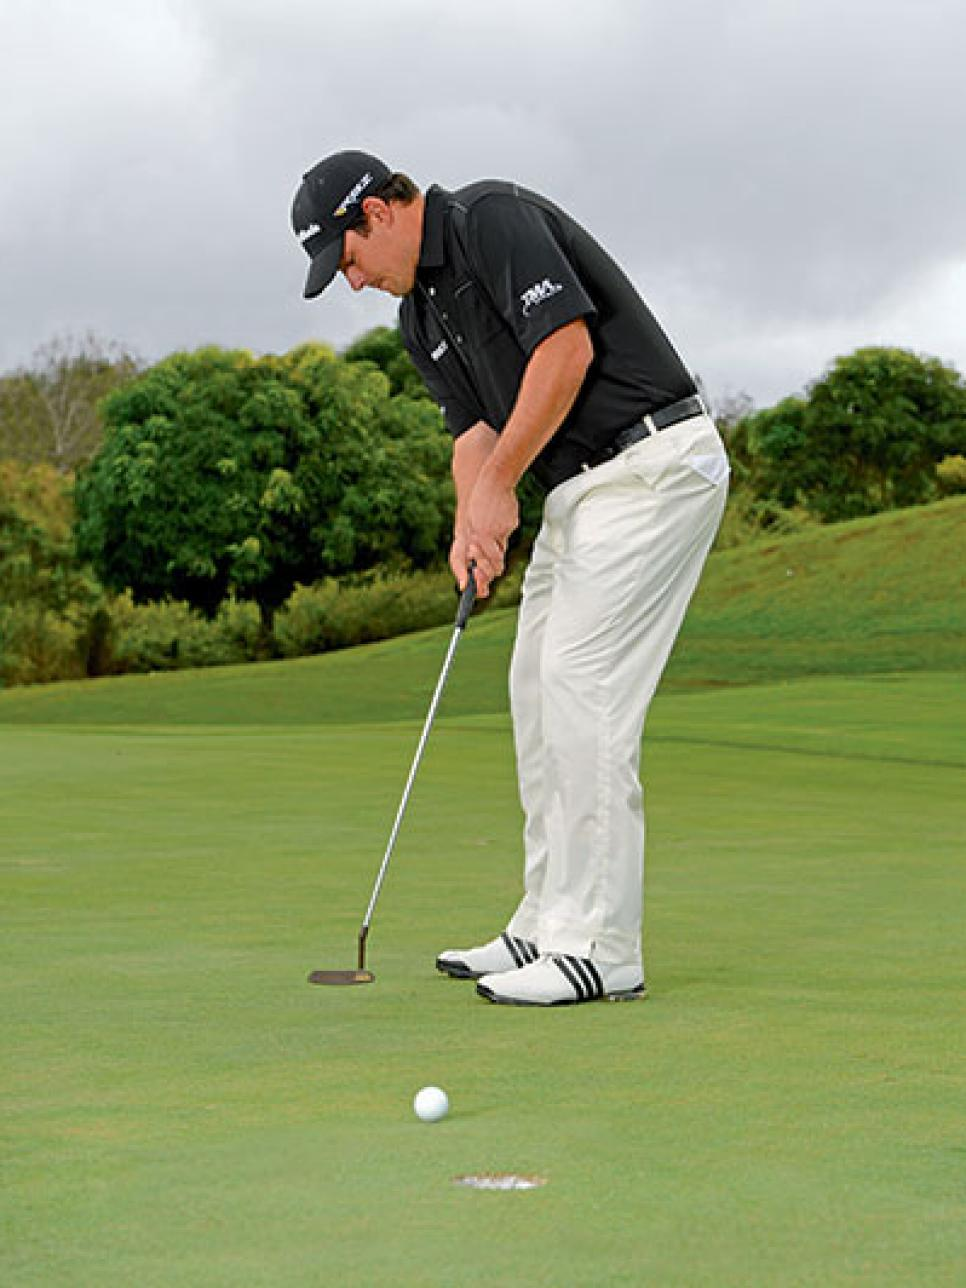 Keep an easy grip on your putter